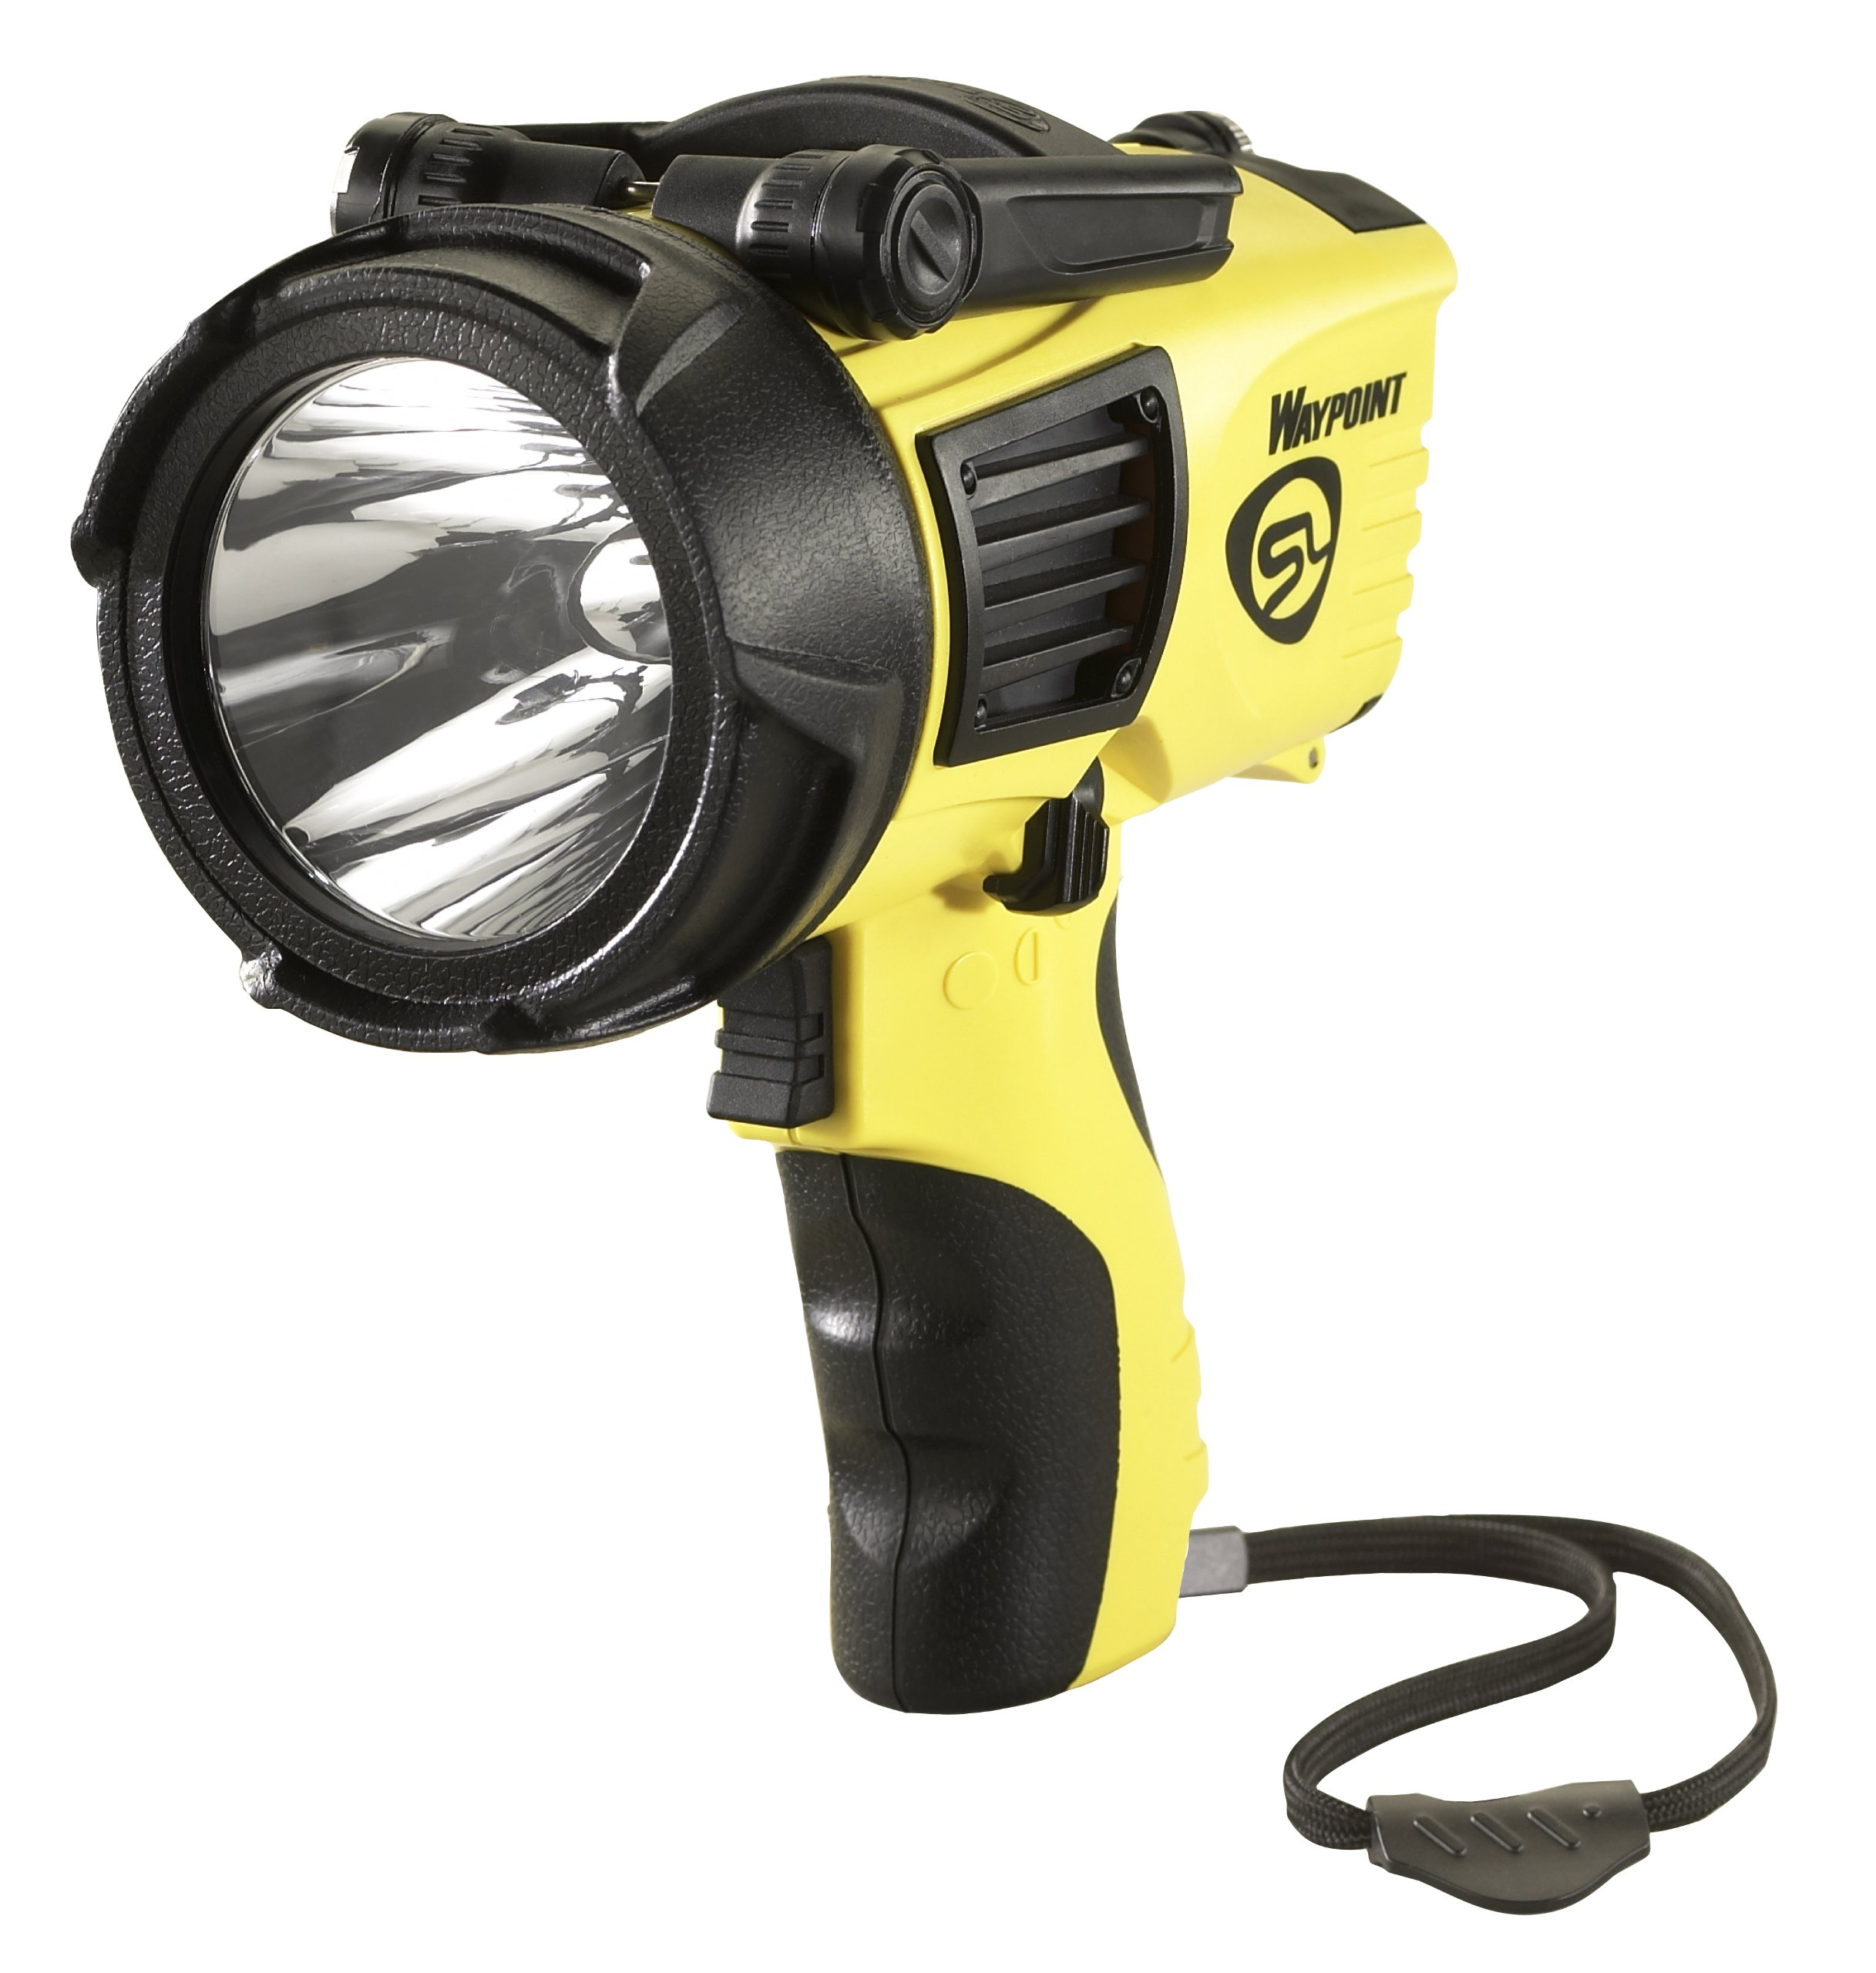 Streamlight 44910 Waypoint 1000-Lumens Spotlight with 120-Volt AC Charger, Yellow by Streamlight